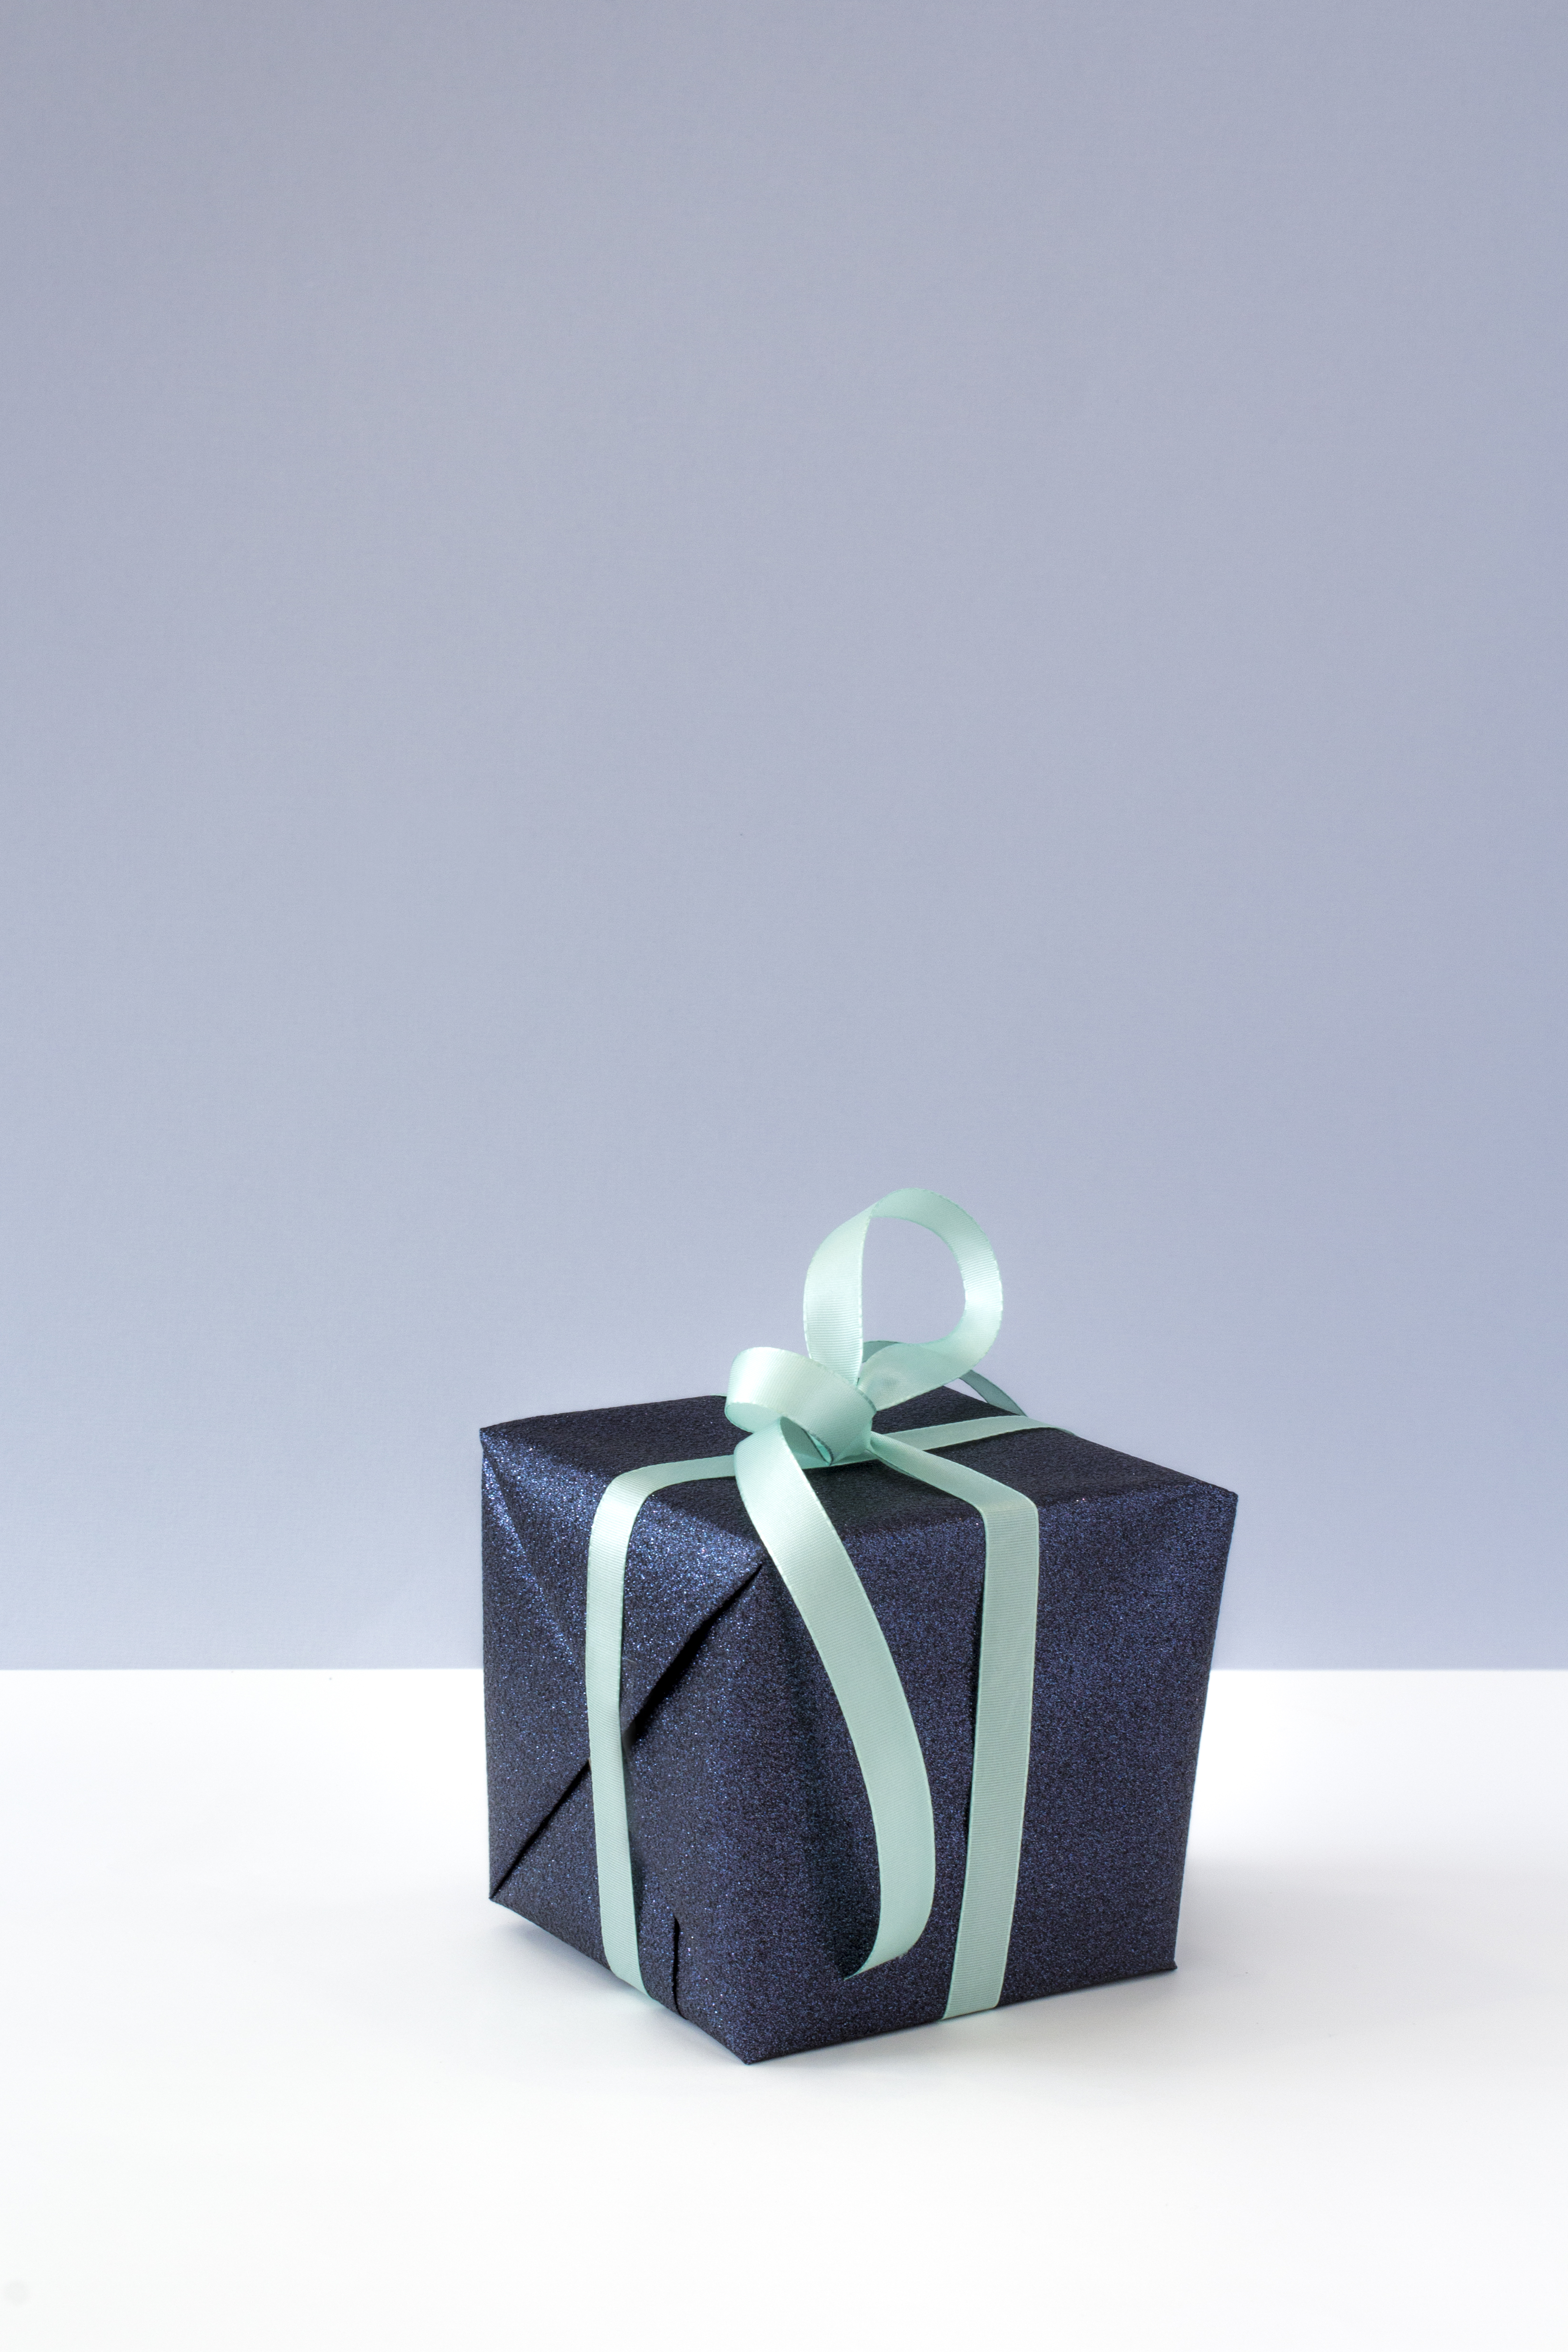 Blue Gift Box With Blue Ribbon 183 Free Stock Photo